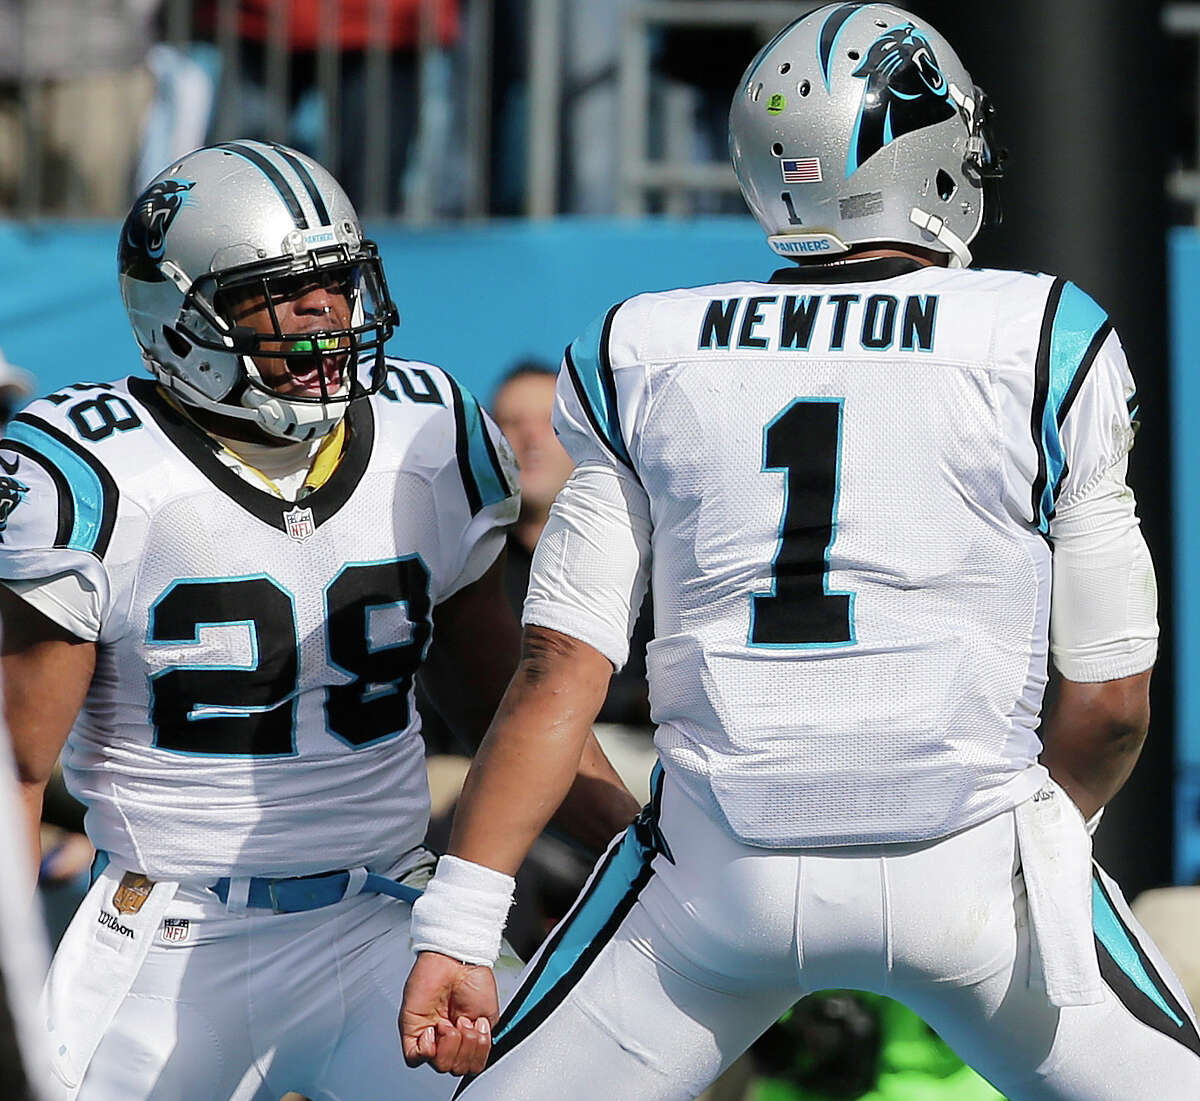 Carolina Panthers running back Jonathan Stewart (28) celebrates his touchdown with Carolina Panthers quarterback Cam Newton (1) against the Seattle Seahawks during the first half of an NFL divisional playoff football game, Sunday, Jan. 17, 2016, in Charlotte, N.C. (AP Photo/Chuck Burton) ORG XMIT: NCMS105